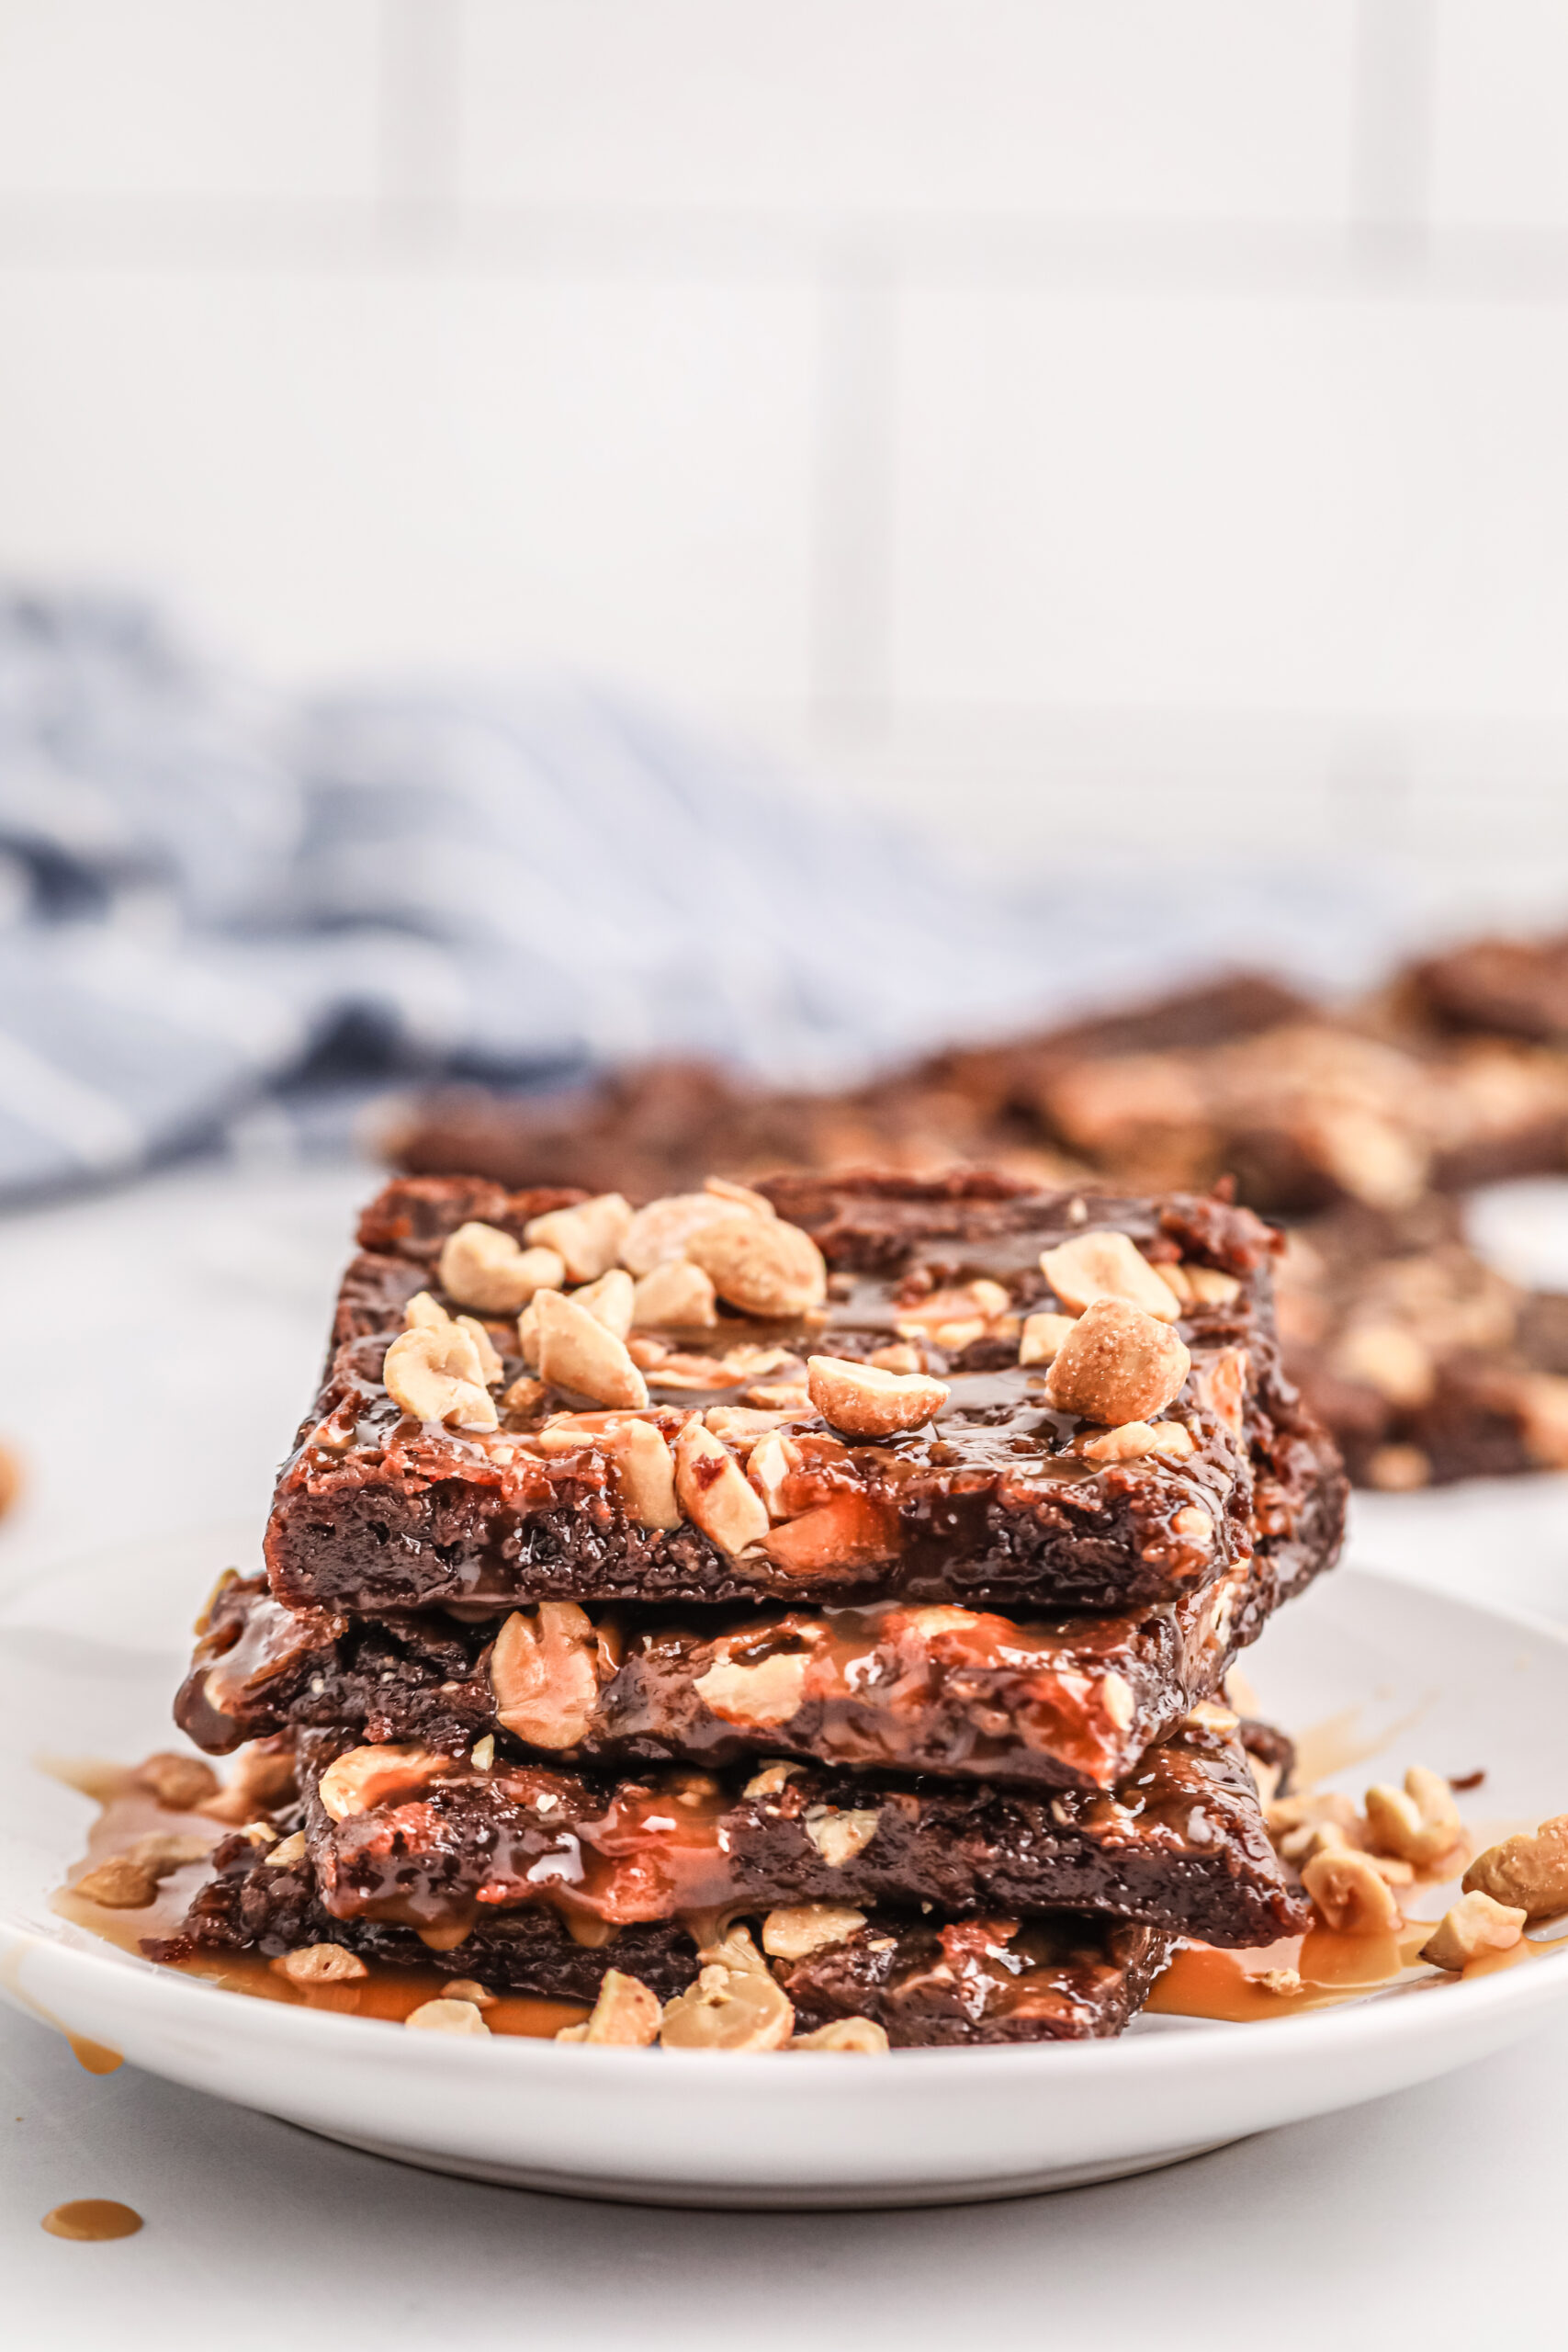 stack of thin, peanut topped brownies on a plate